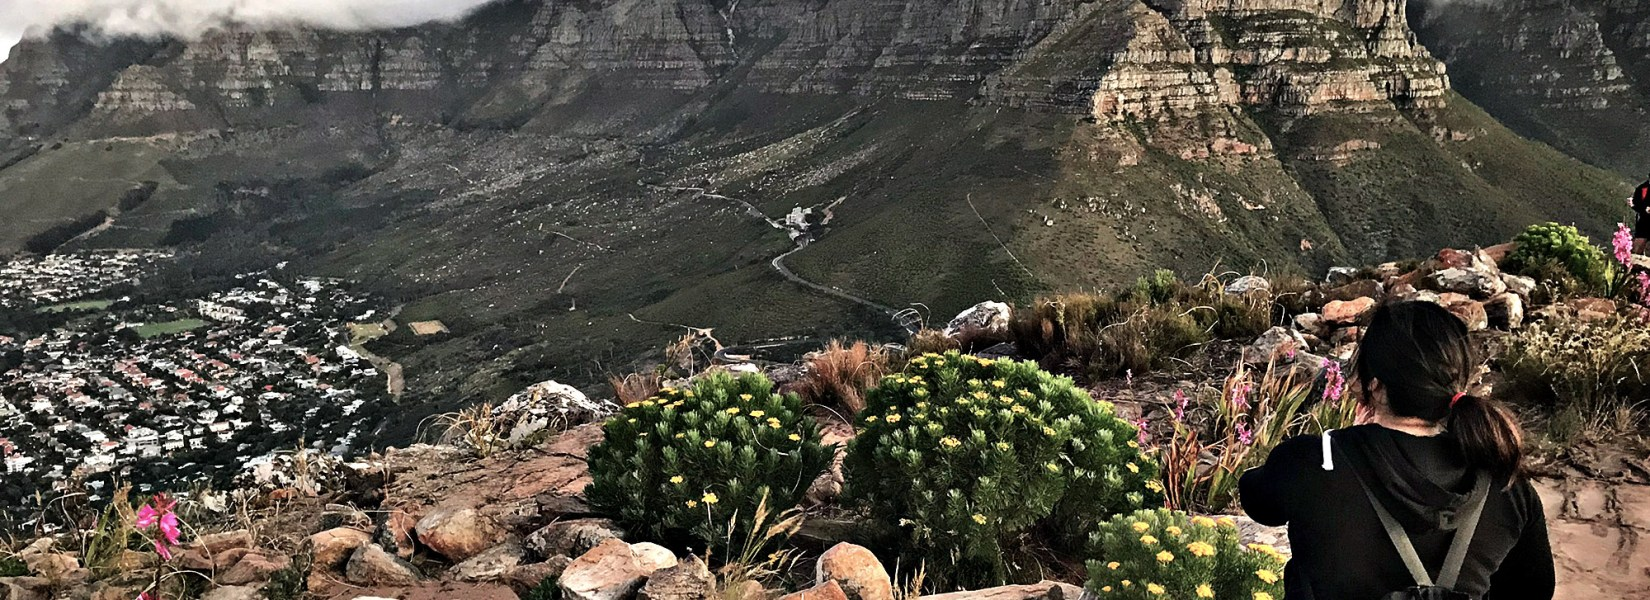 The Best Adventure Activities in Cape Town, South Africa.